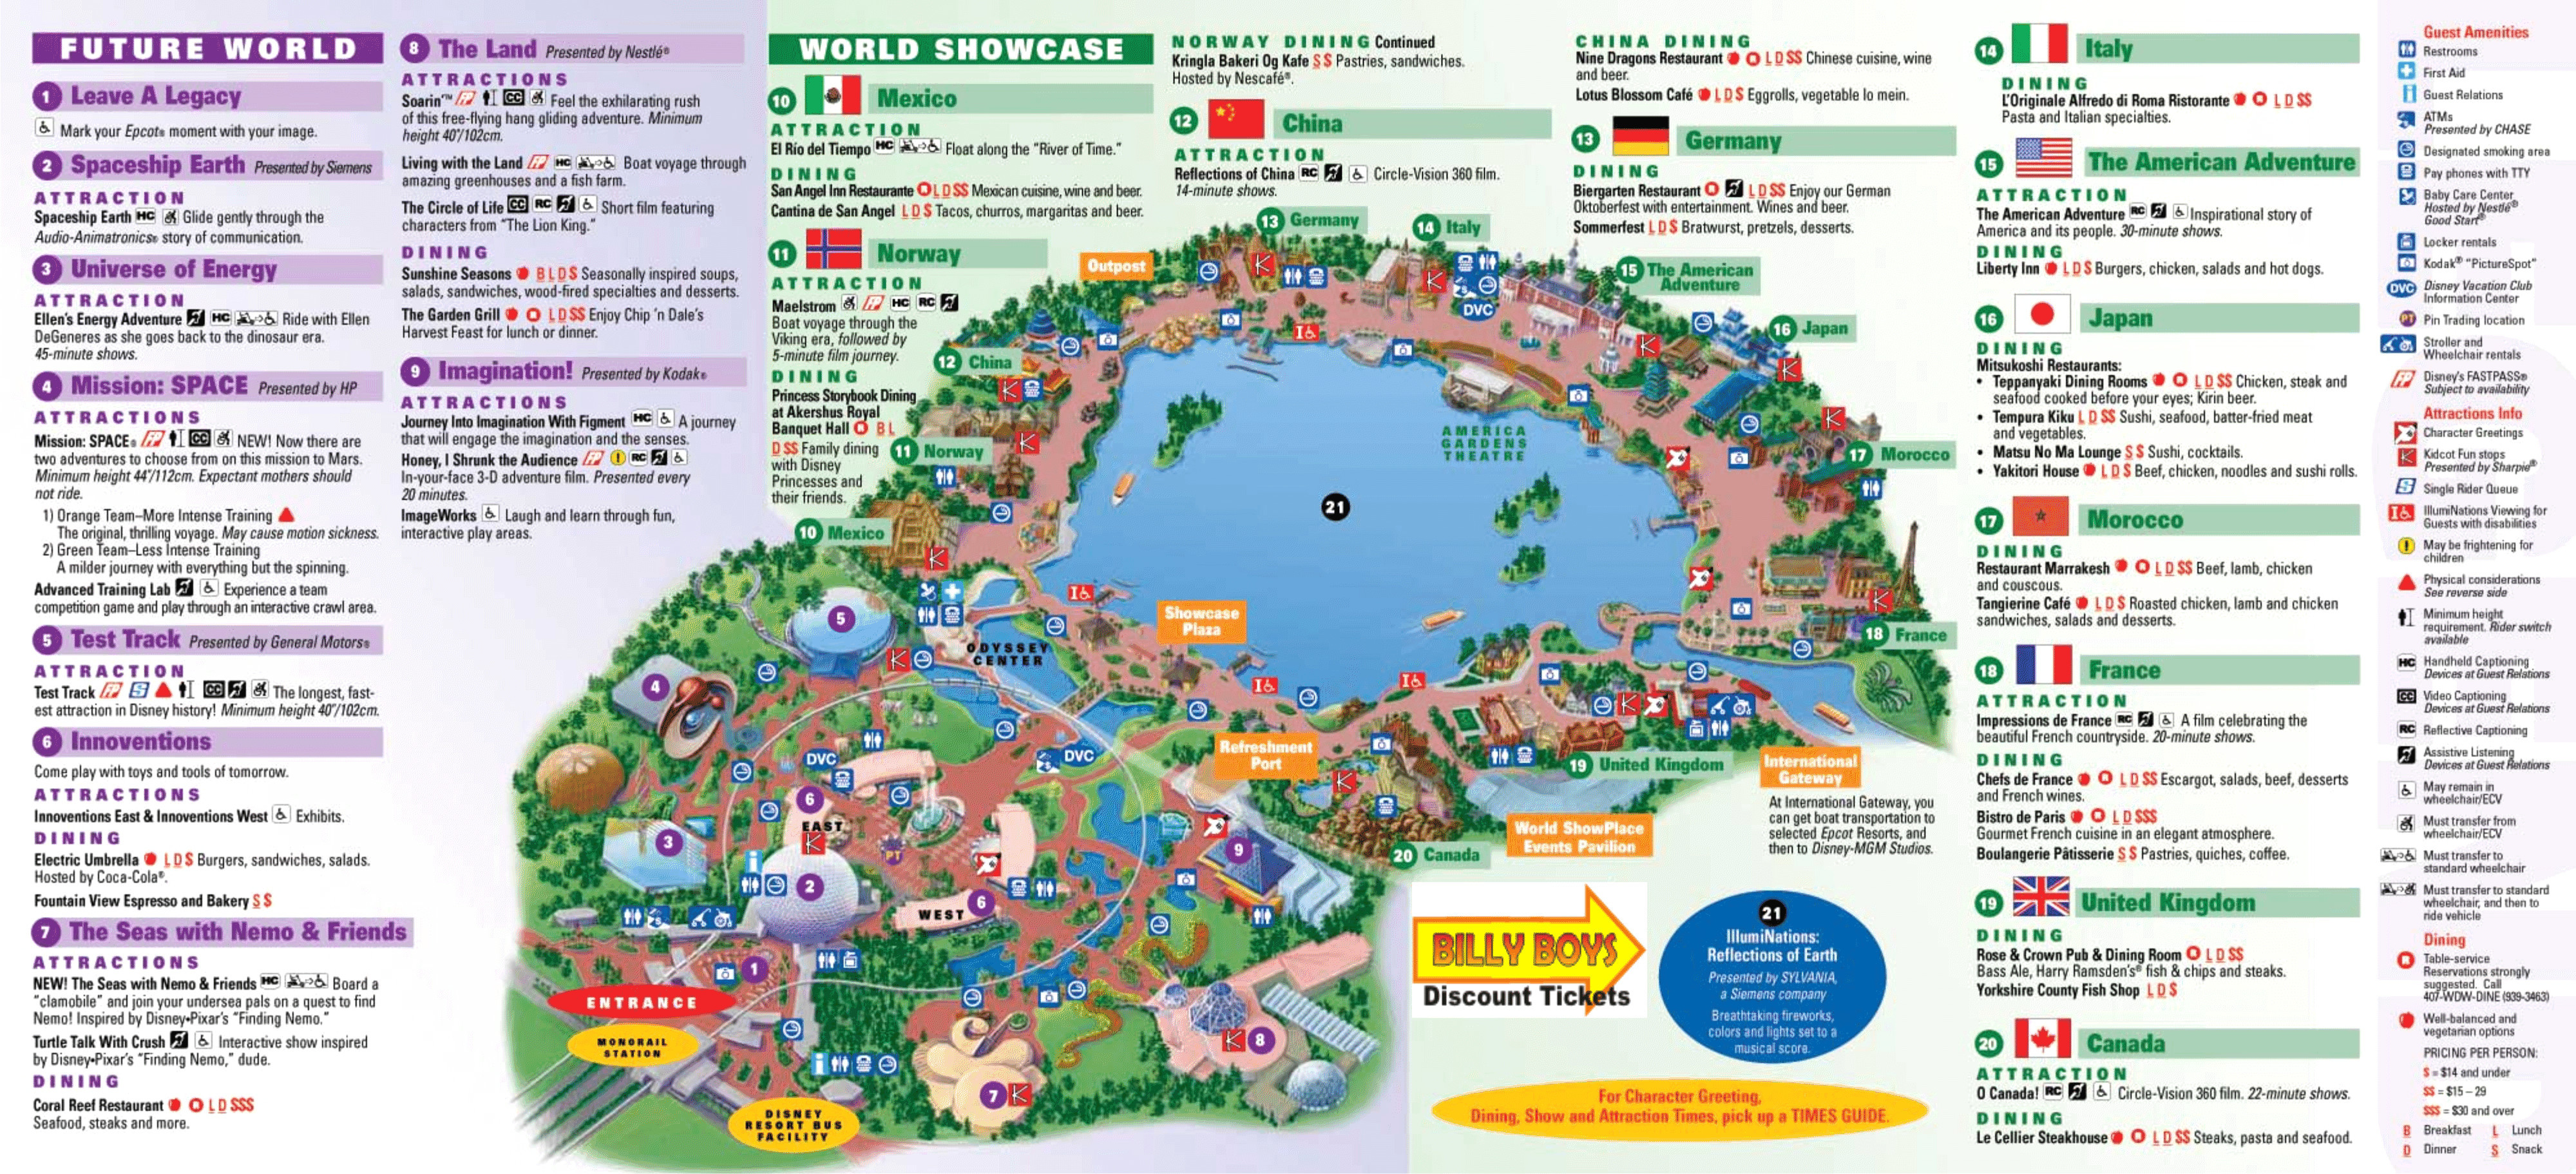 Orlando Florida Area Maps For Disney World Hollywood Studios Map Printable